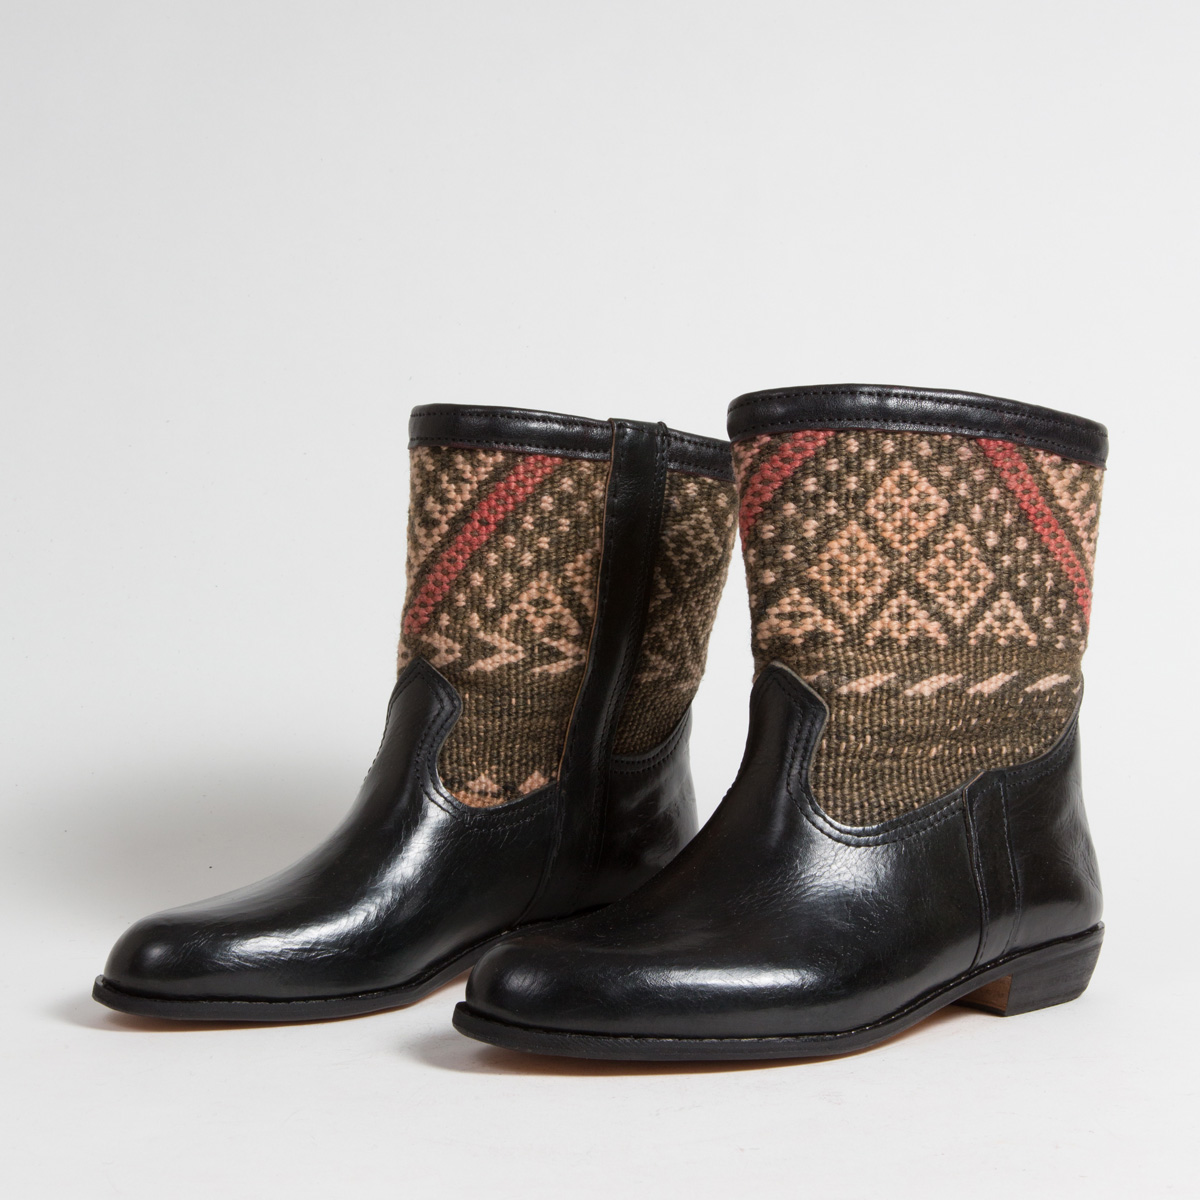 Bottines Kilim - images/kilim/bottines/rpn29-01-41-kilim-artisanat-cuir-ethnique-marocaine-bottine-femme-s.jpg